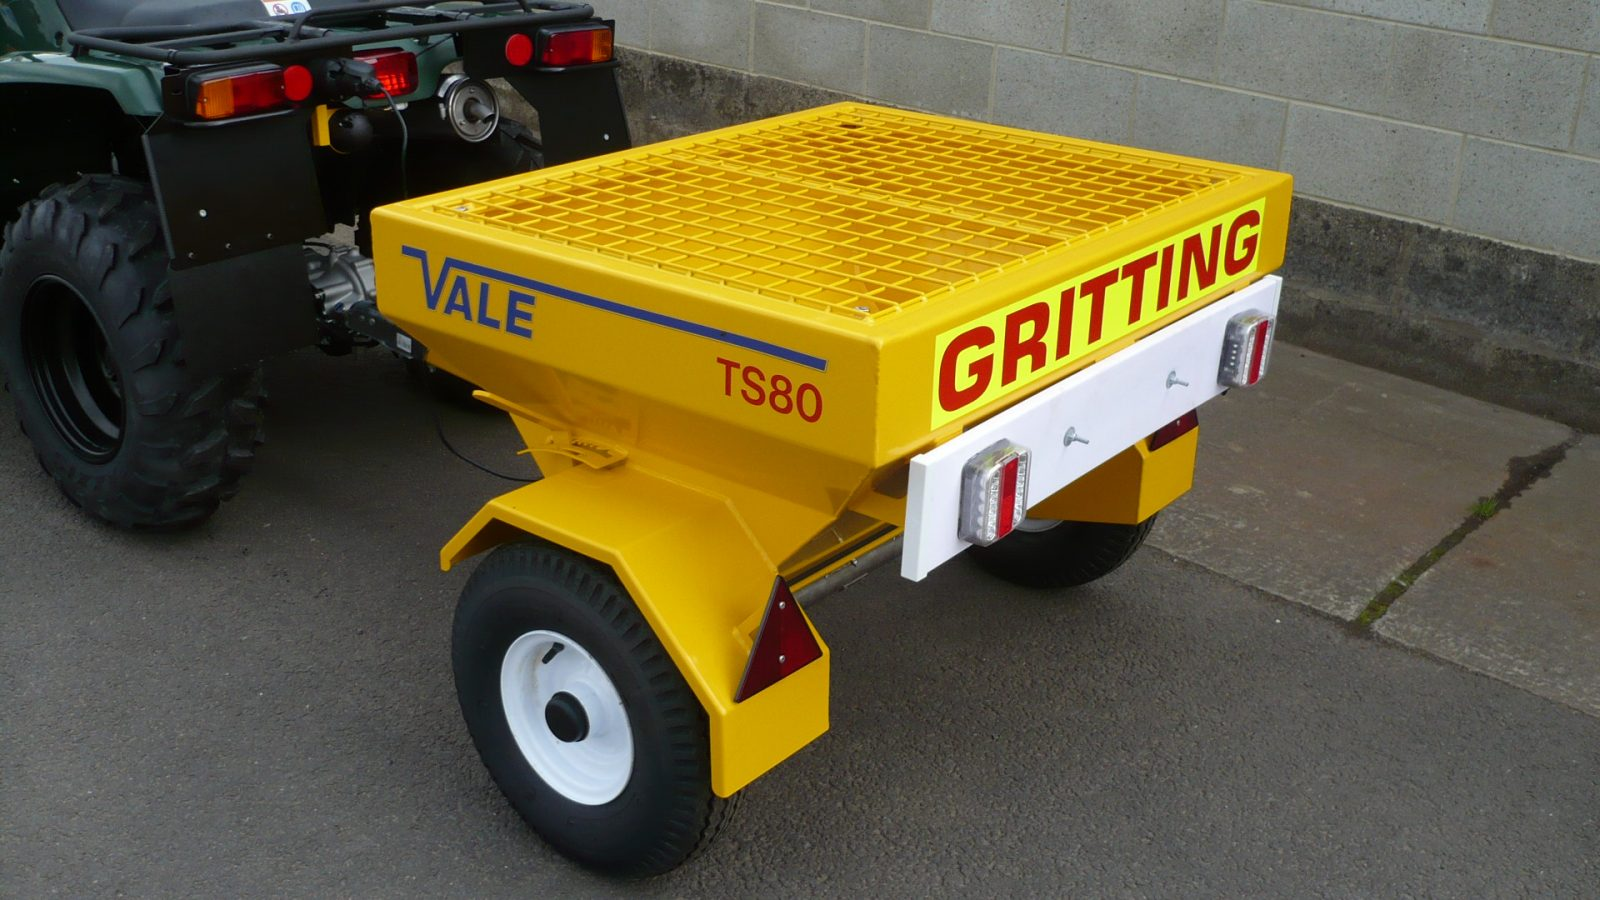 Like all VALE Engineering's winter maintenance designs, metalwork is blast cleaned, zinc rich powder primed and then finished in polyester powder